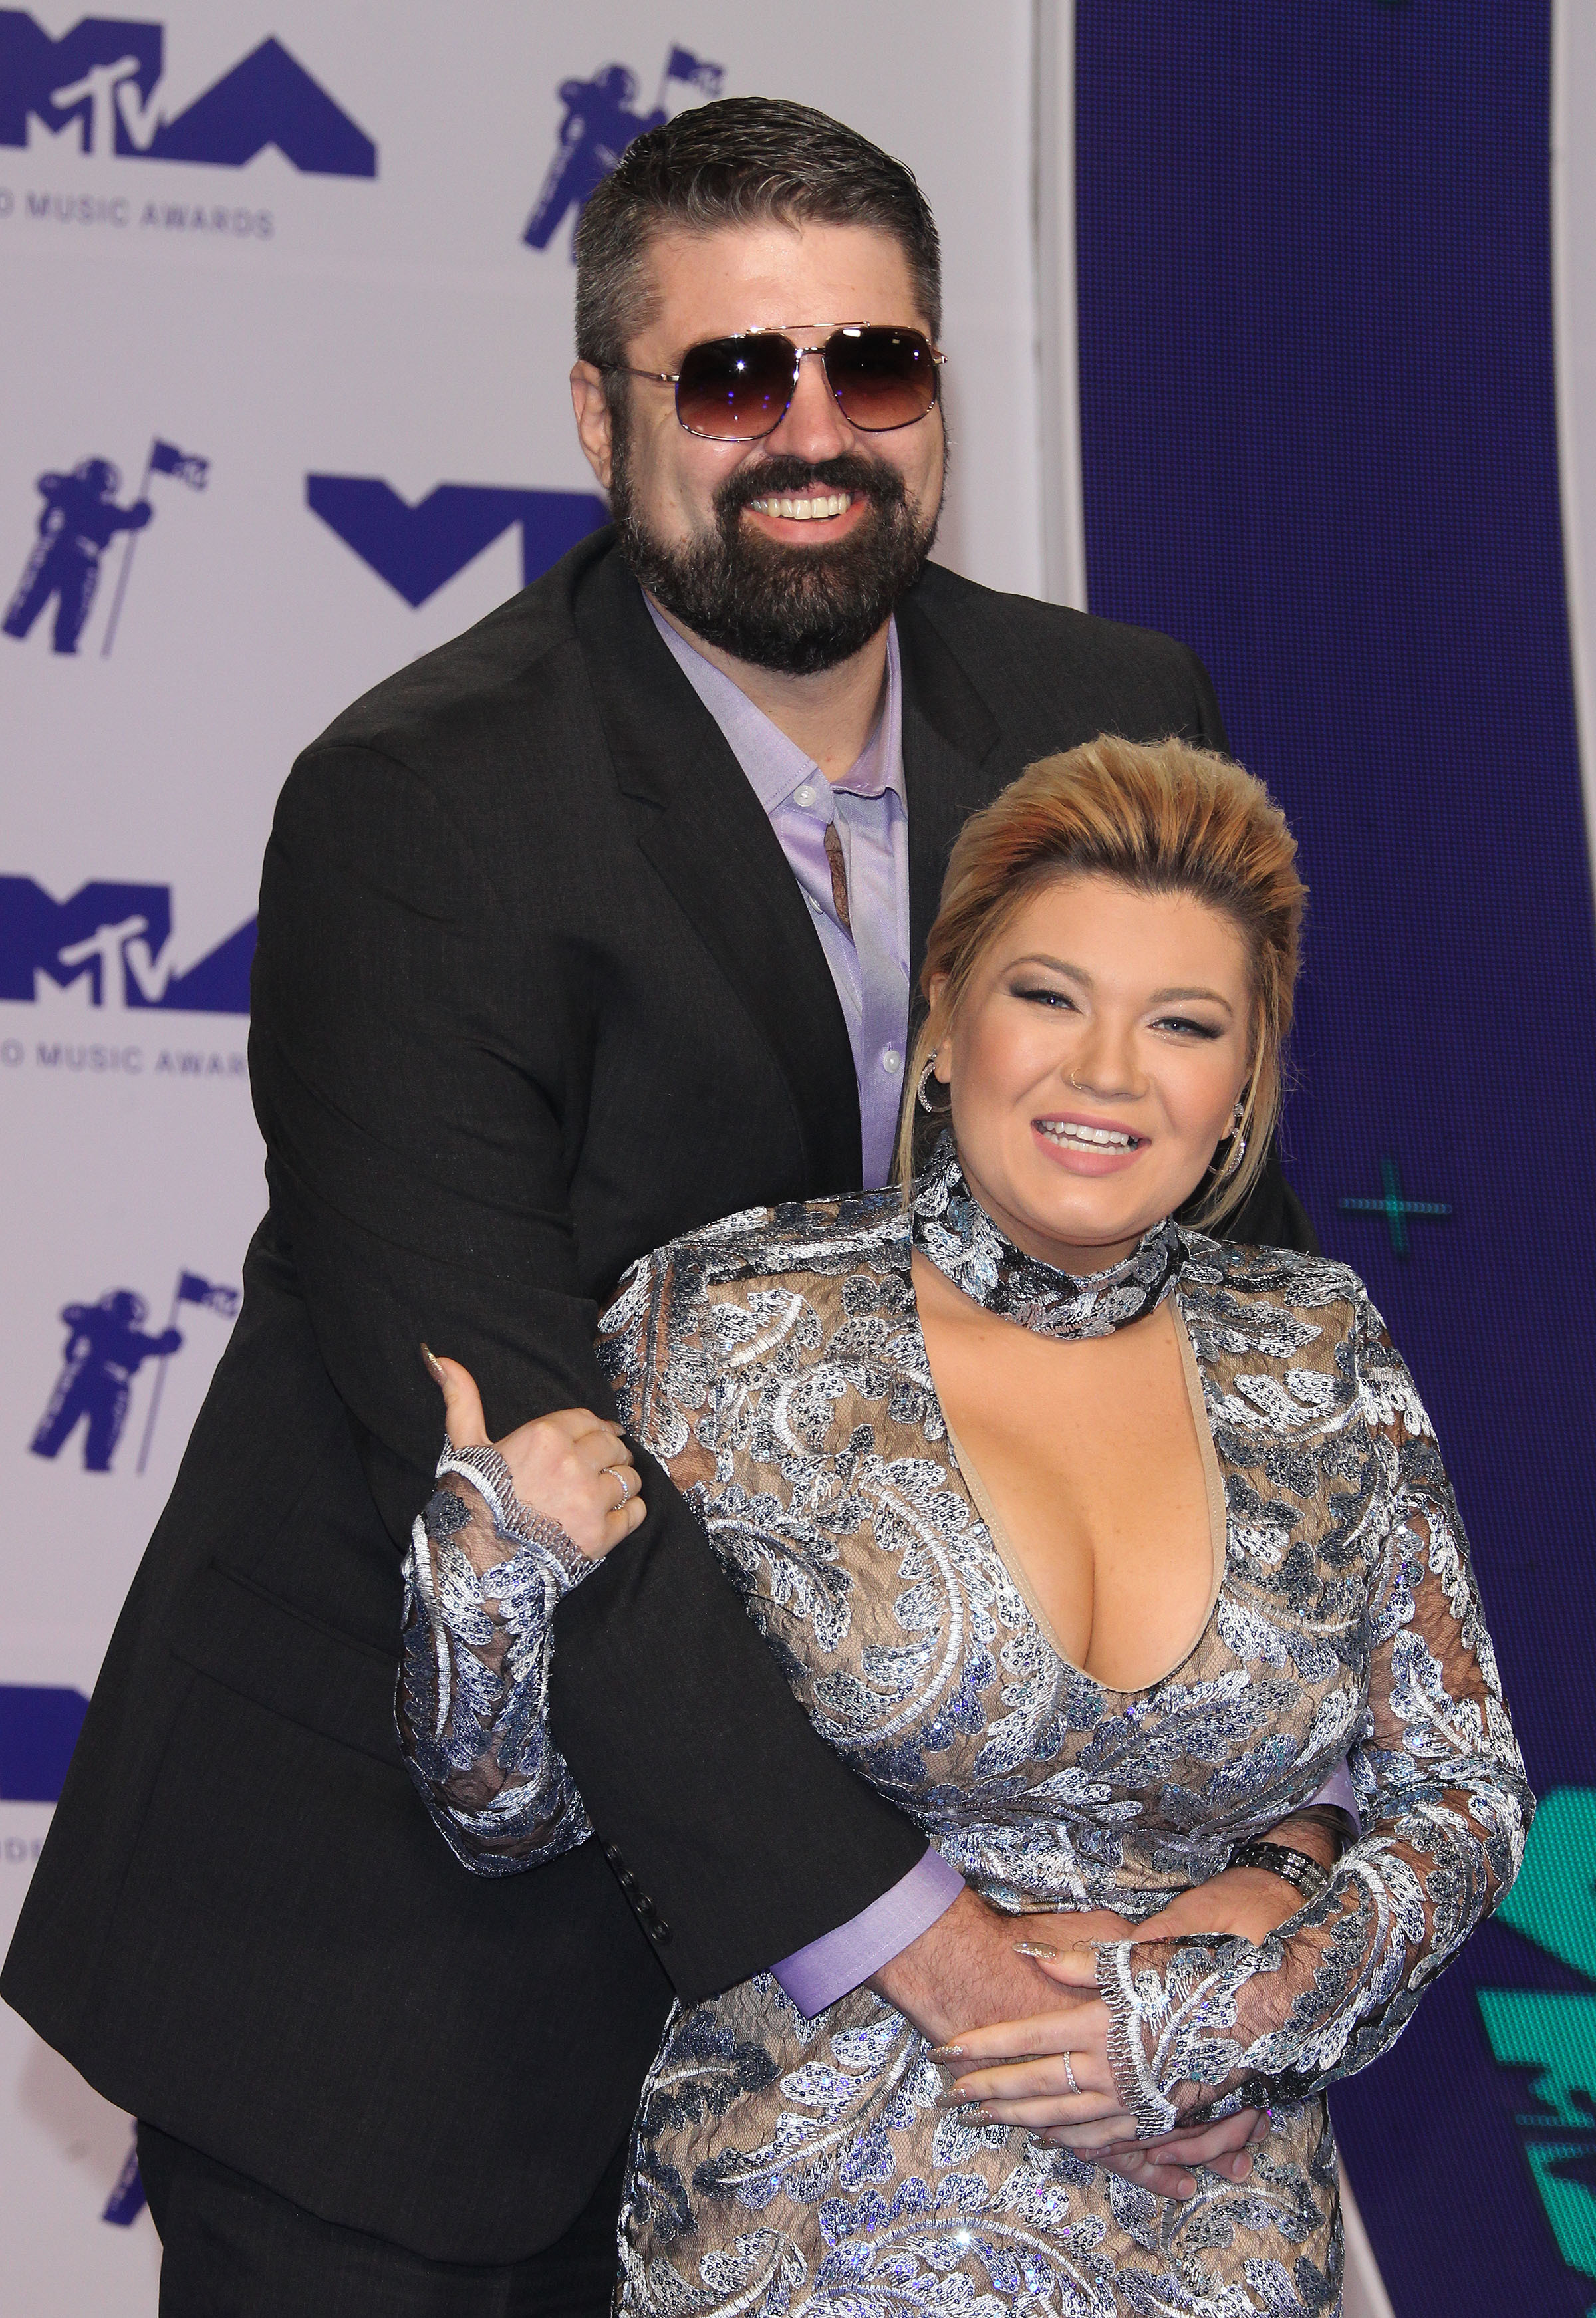 Amber Portwood and Andrew Glennon at the MTV VMAs in Los Angeles on Aug. 27, 2017.